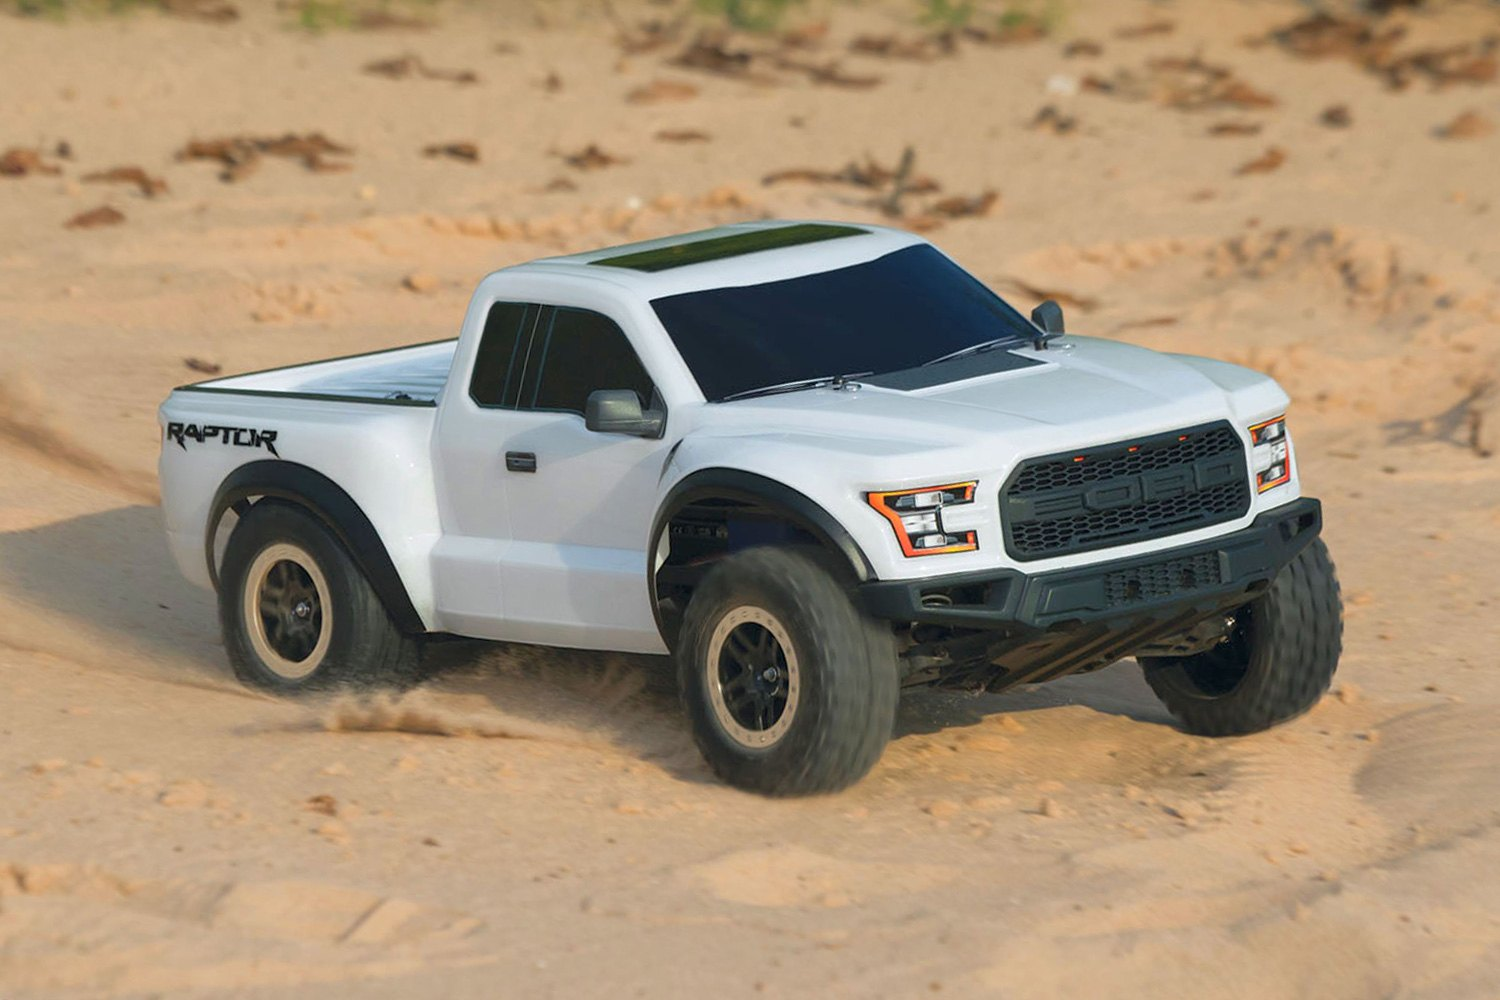 traxxas 2017 ford raptor replica model electric truck. Black Bedroom Furniture Sets. Home Design Ideas